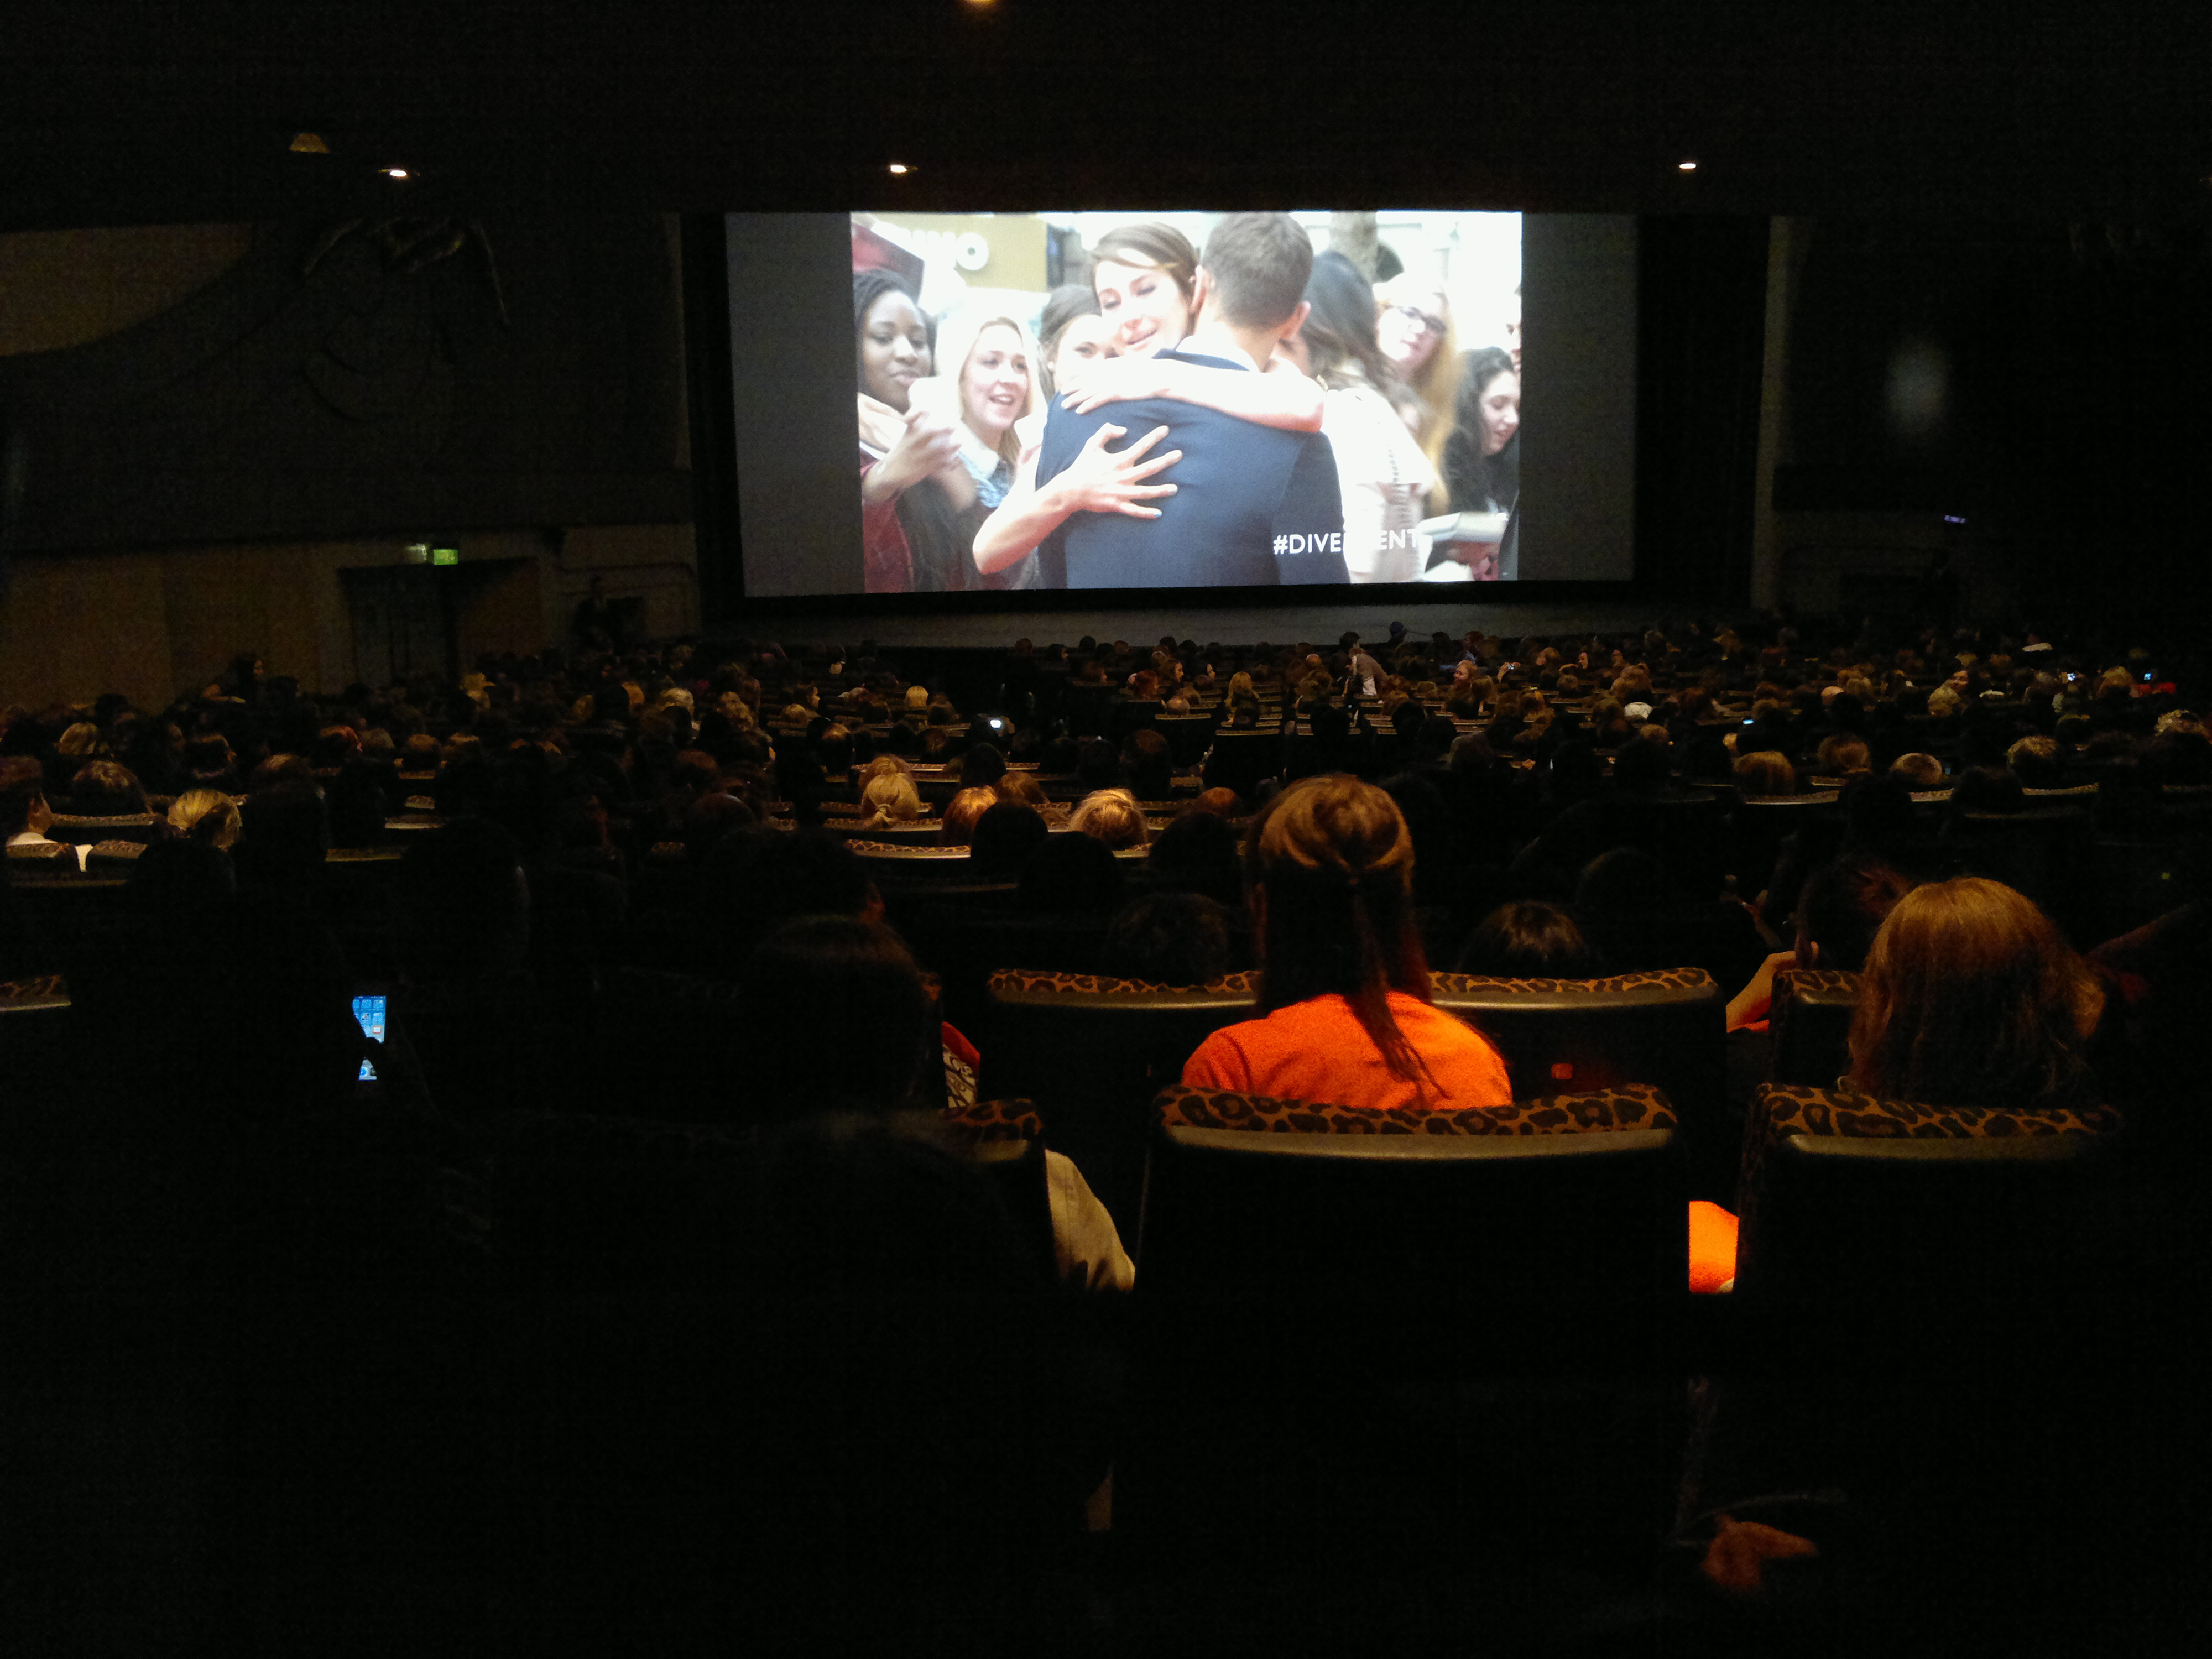 Inside the cinema at the Divergent première